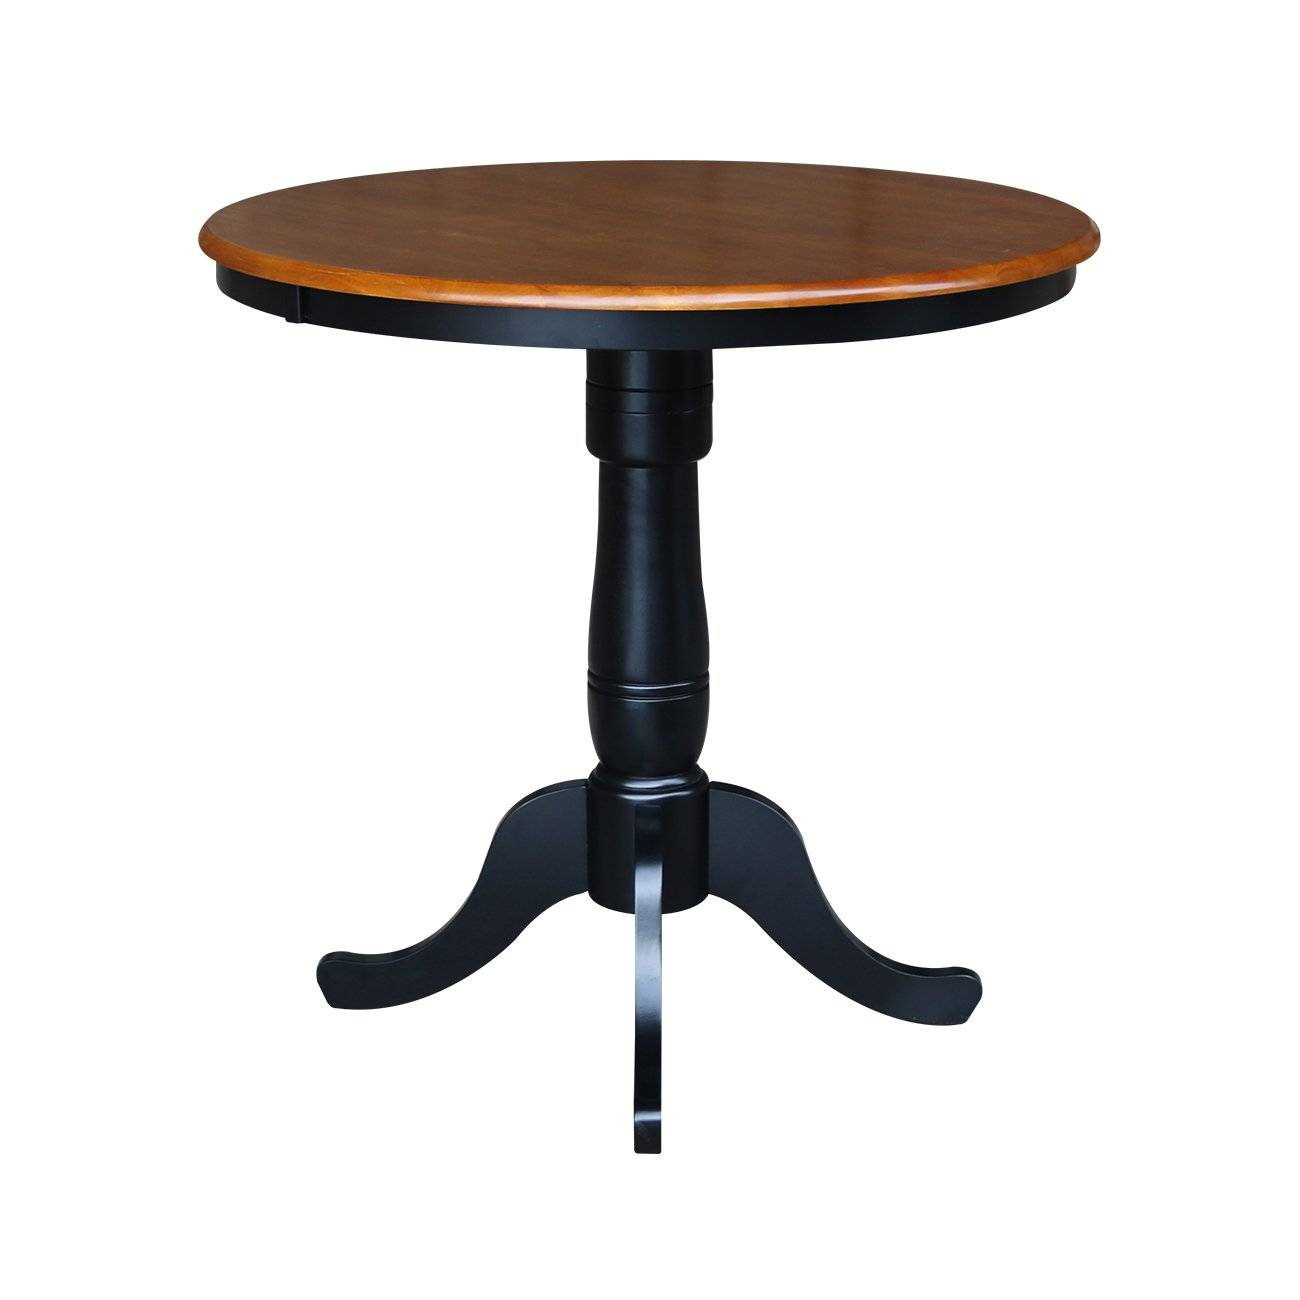 Counter High Round Table.International Concepts 36 Round Counter Height High Dining Table In Black